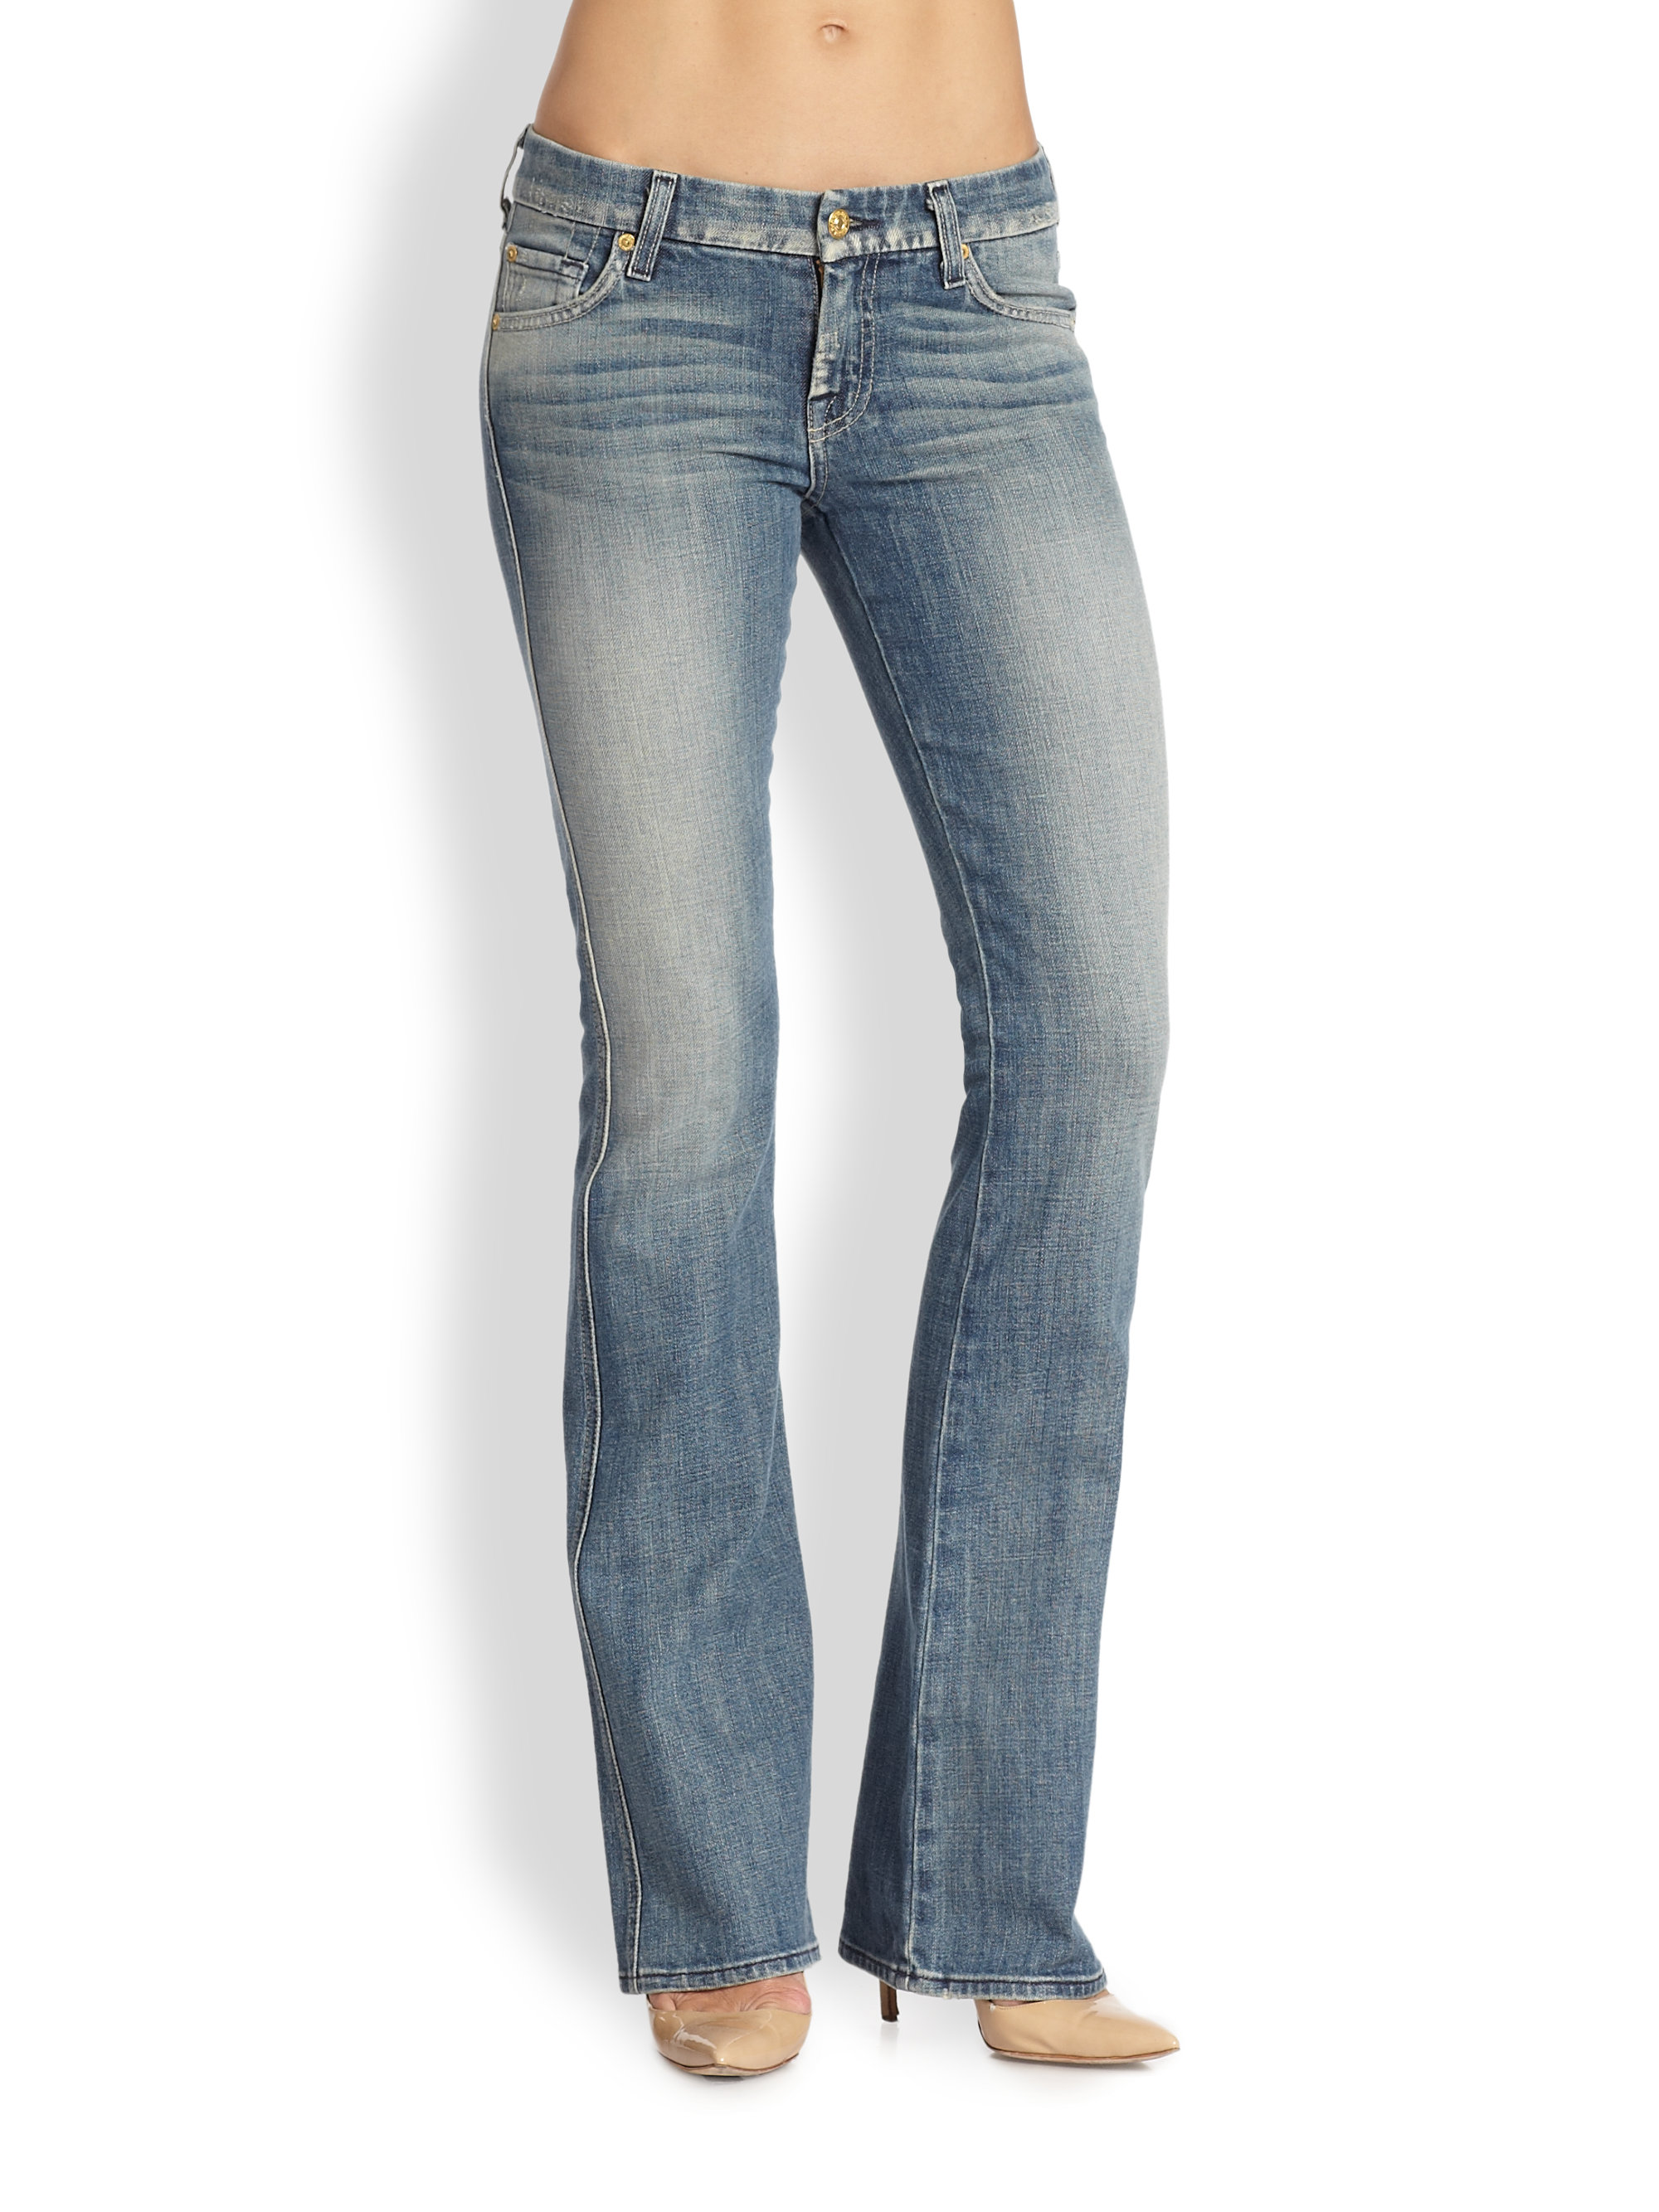 outlet for sale hottest sale arriving 7 For All Mankind Midrise Bootcut Jeans in Blue - Lyst